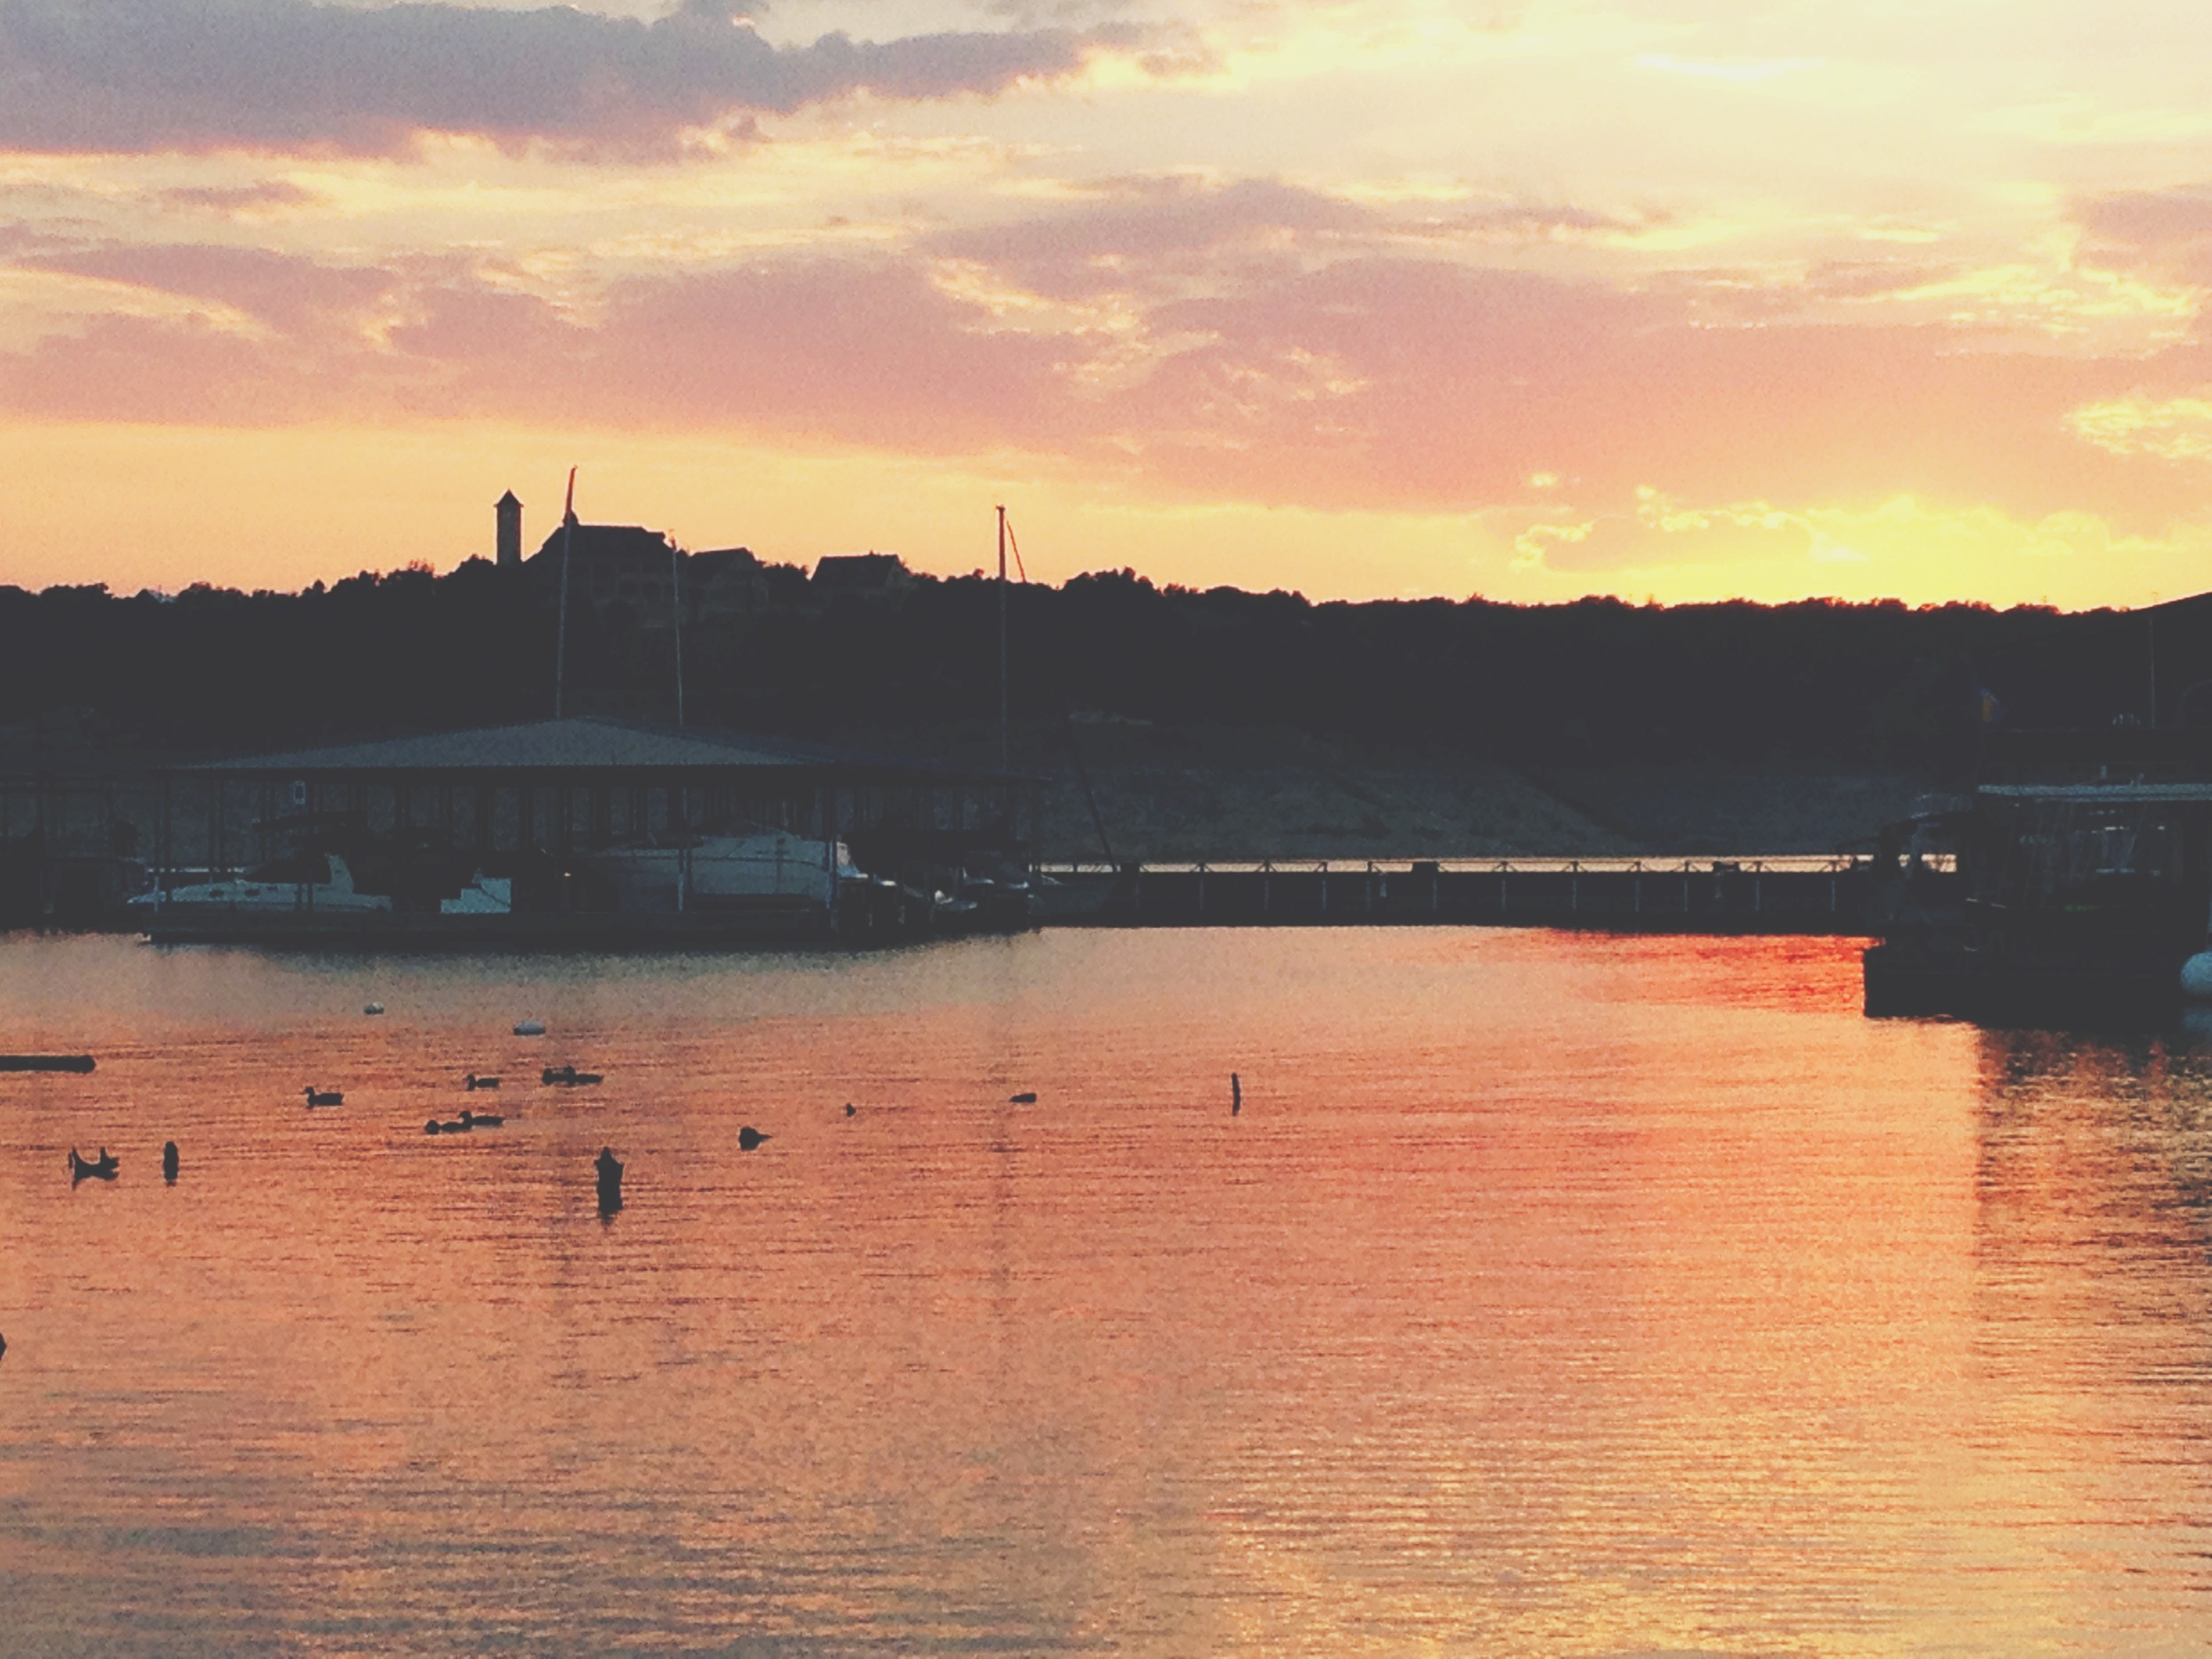 Last night in Austin, Texas over Lake Travis. The end to a beautiful week.